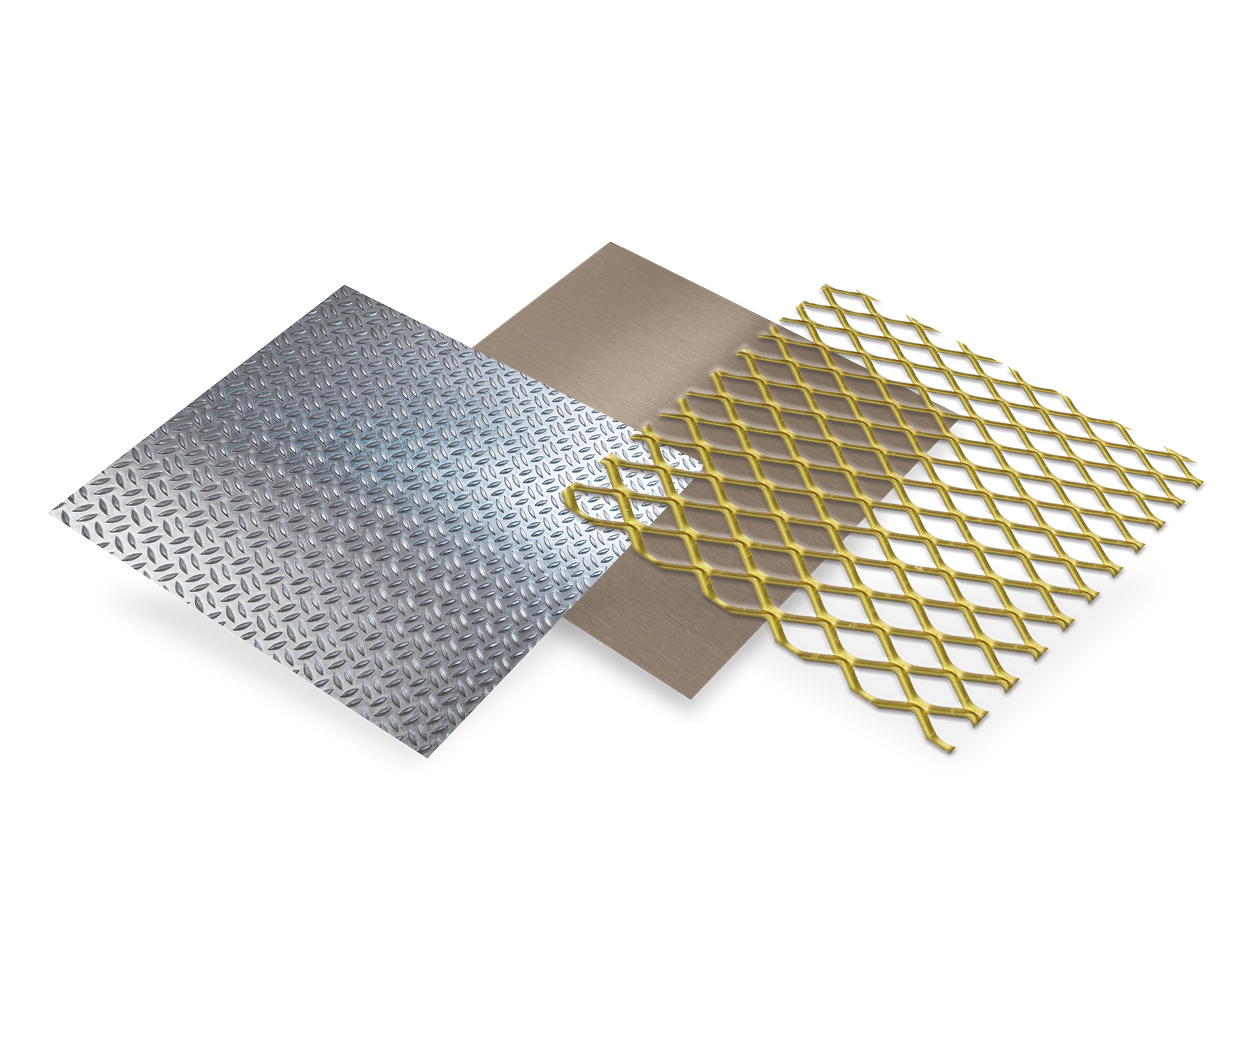 Aluminium sheet metals